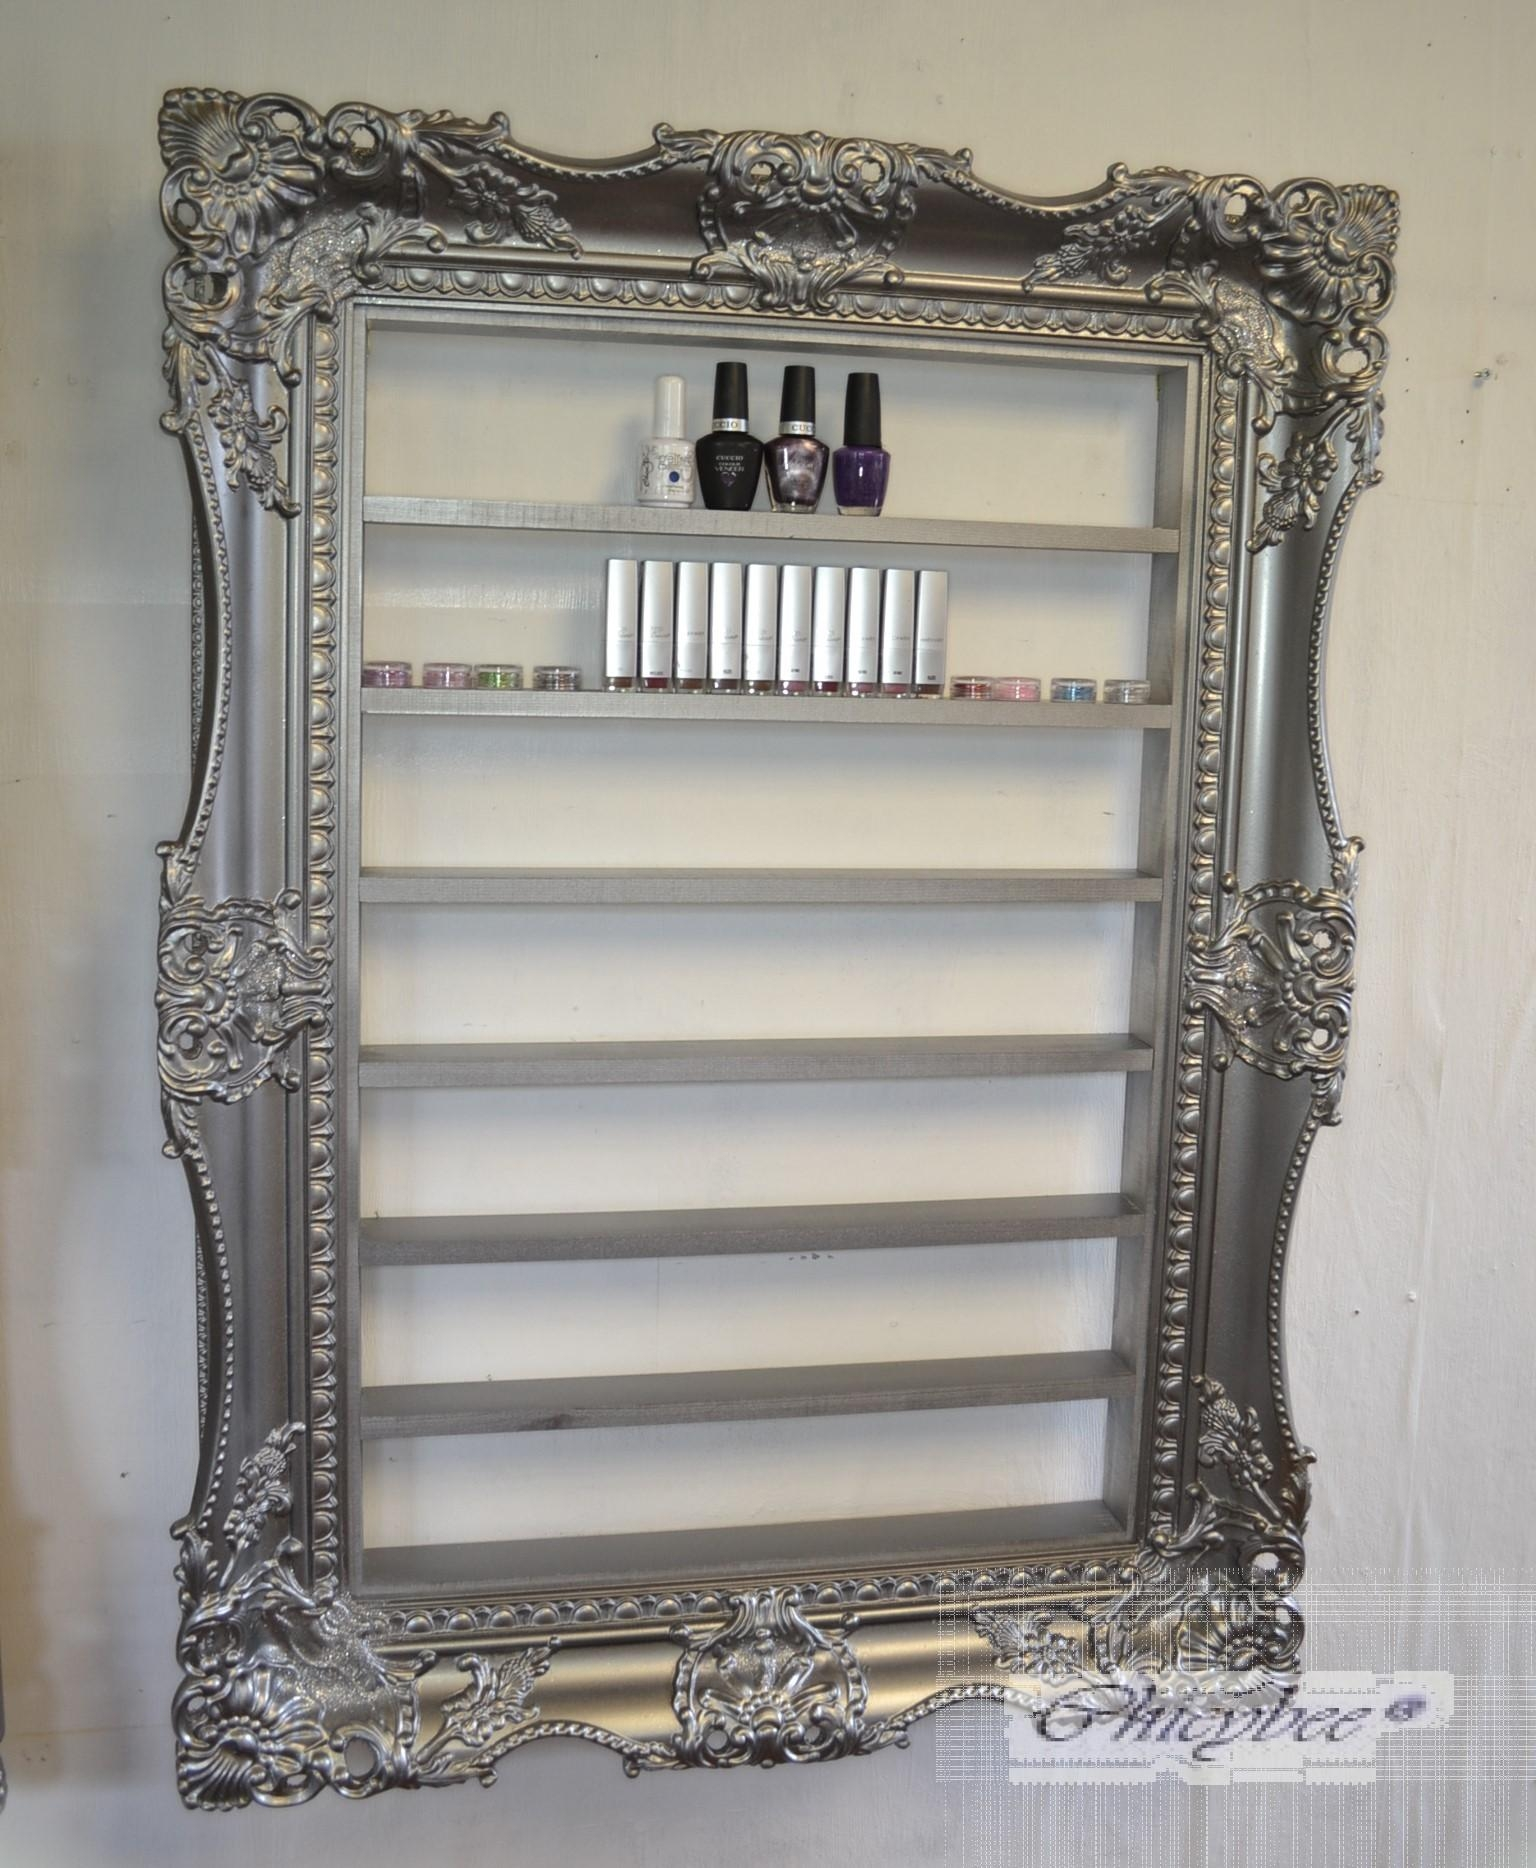 Nail Polish Rack Display Frame Very Wide And Ornate Pewter Silver Pertaining To Pewter Ornate Mirror (Image 6 of 20)